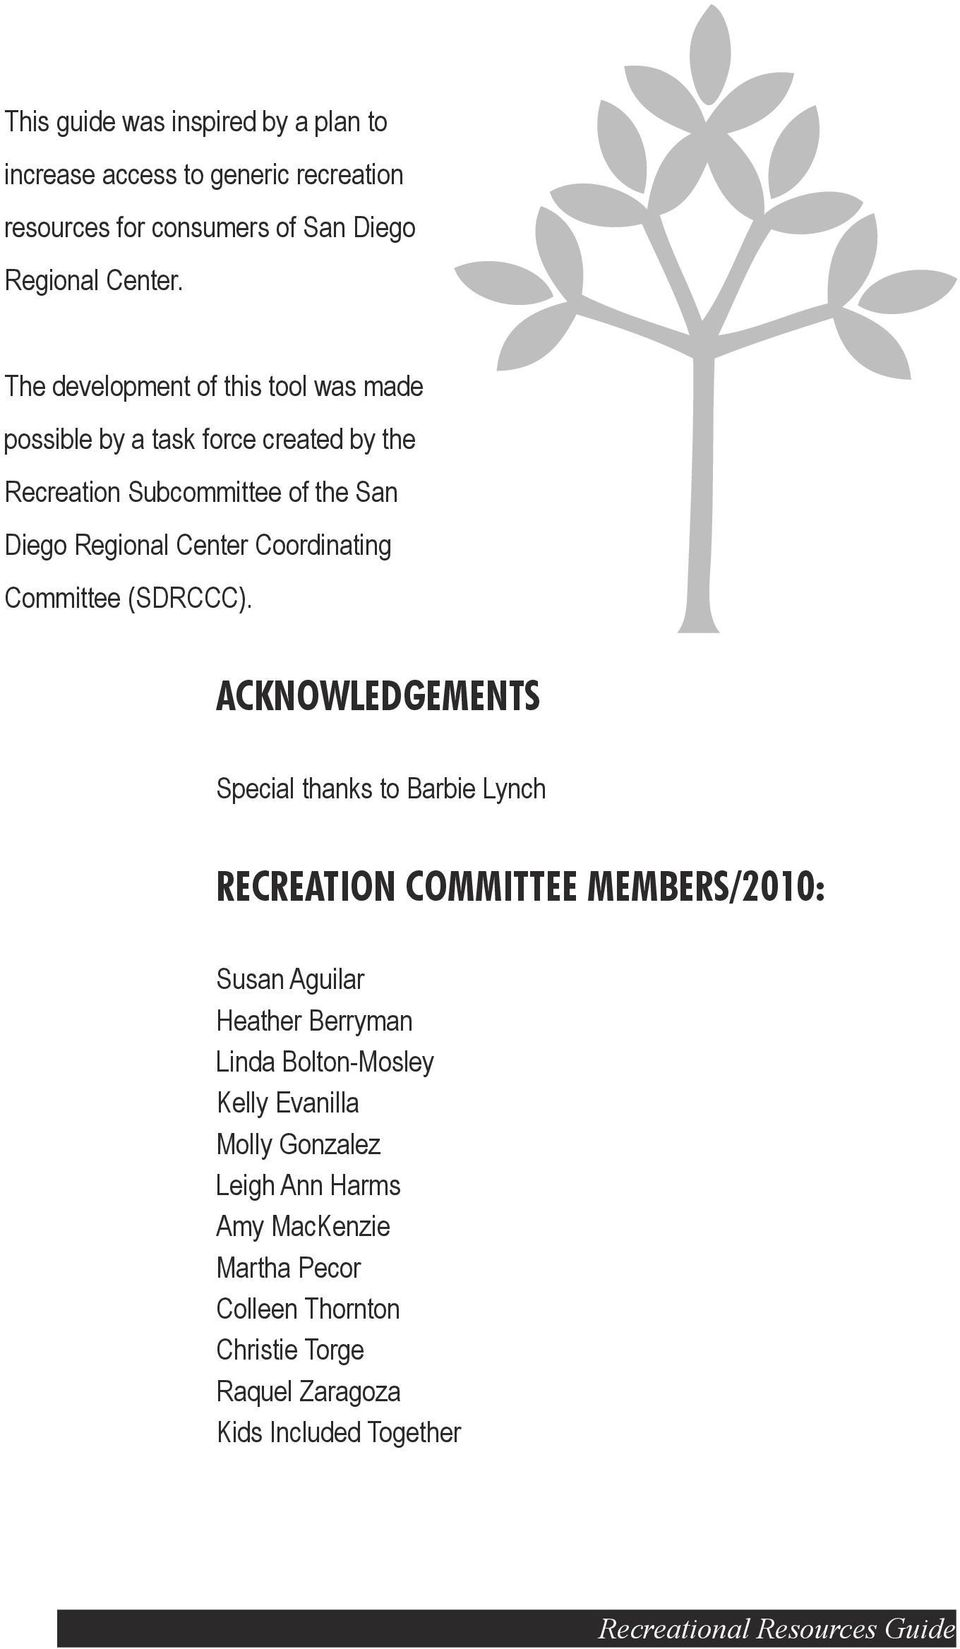 Committee (SDRCCC).